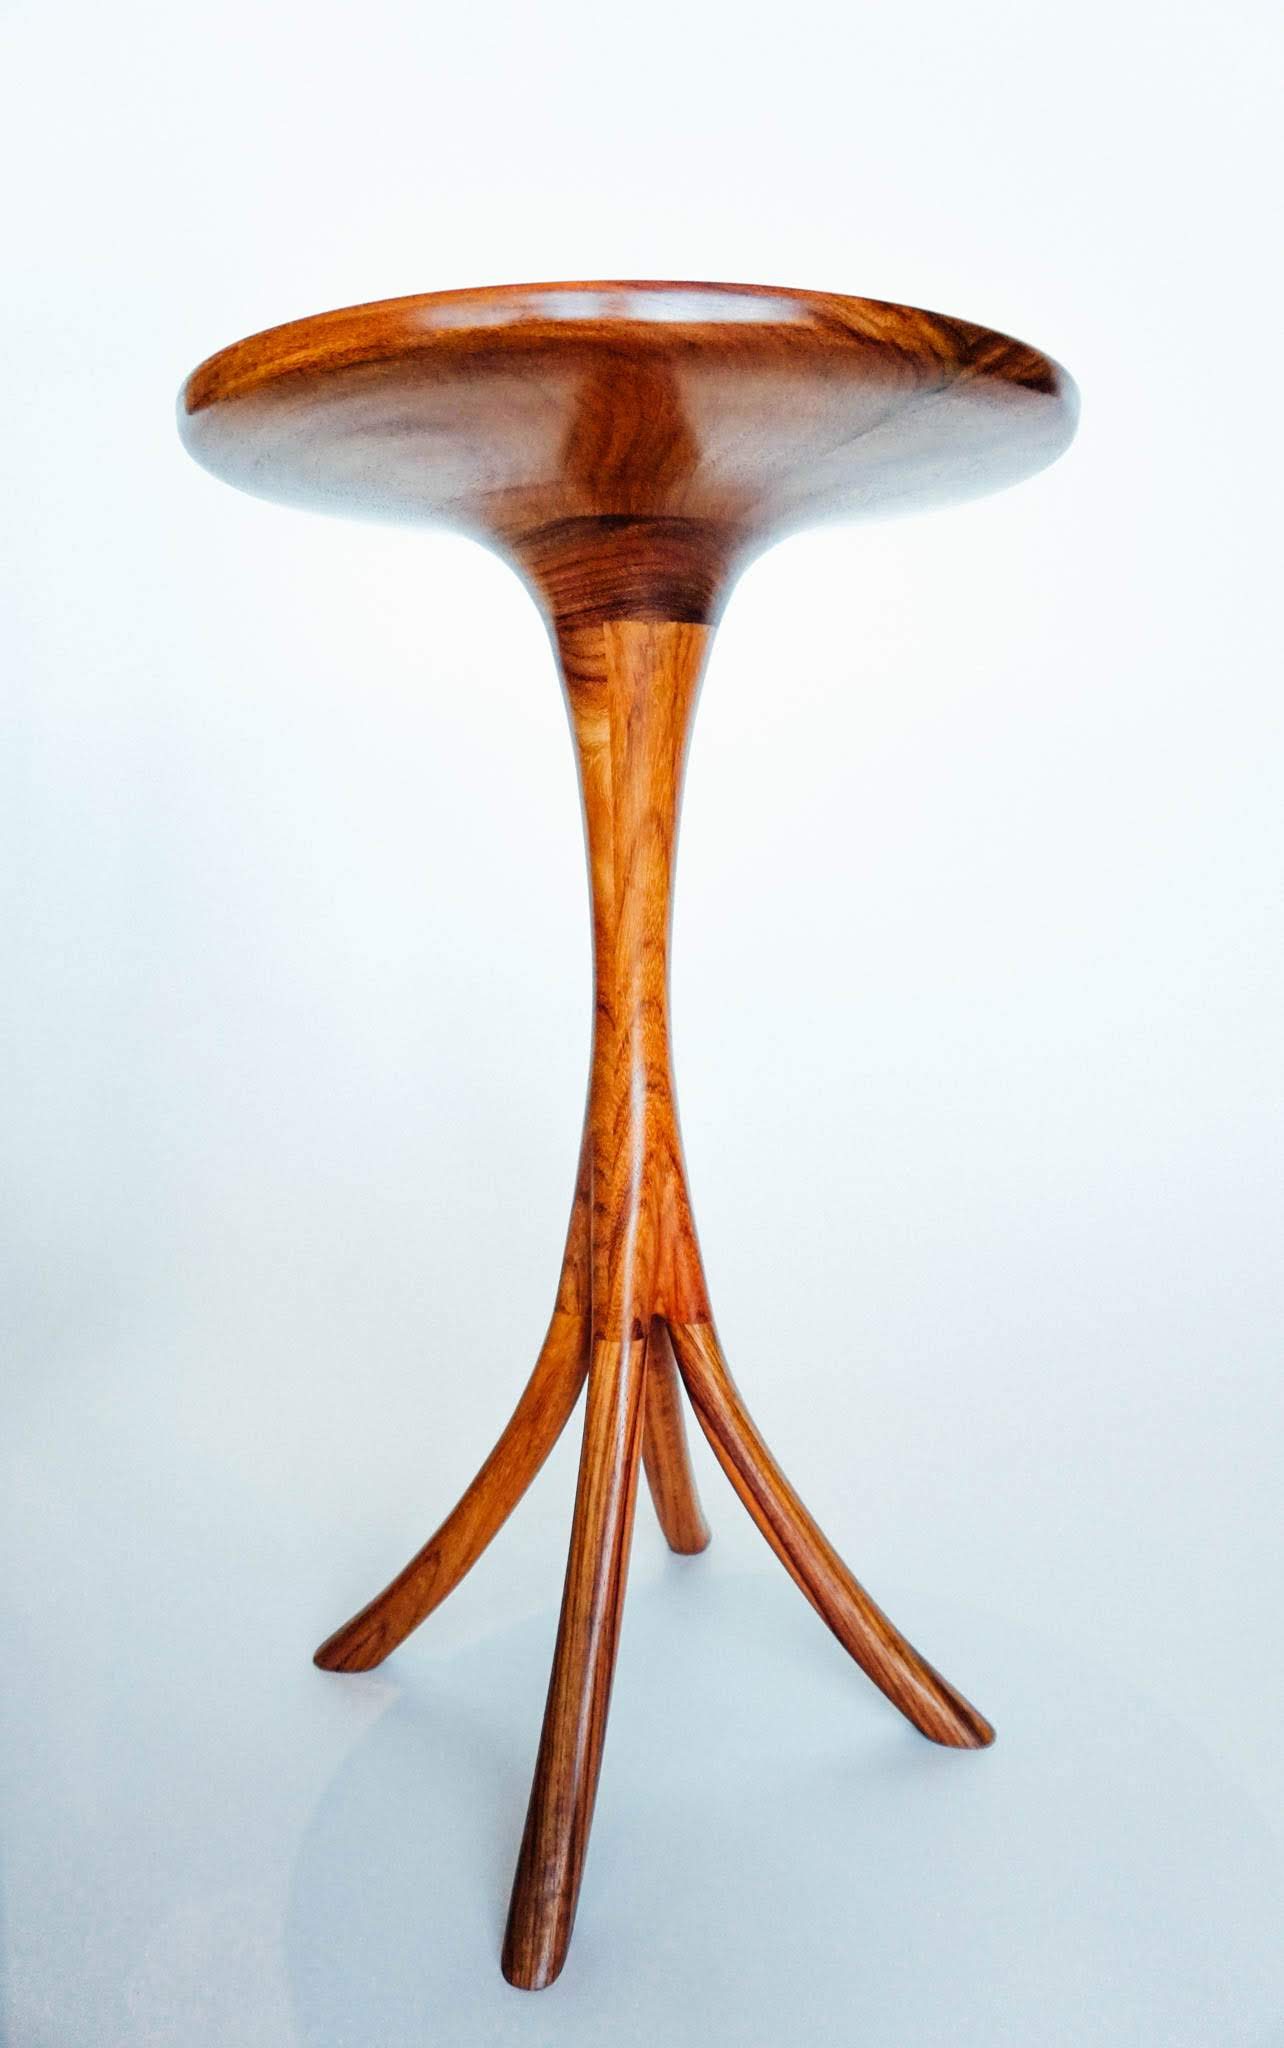 The top and pedestal are turned on the lathe and joined together.  The leg transitions into the pedestal are hand carved to enrich the free flowing organic form.